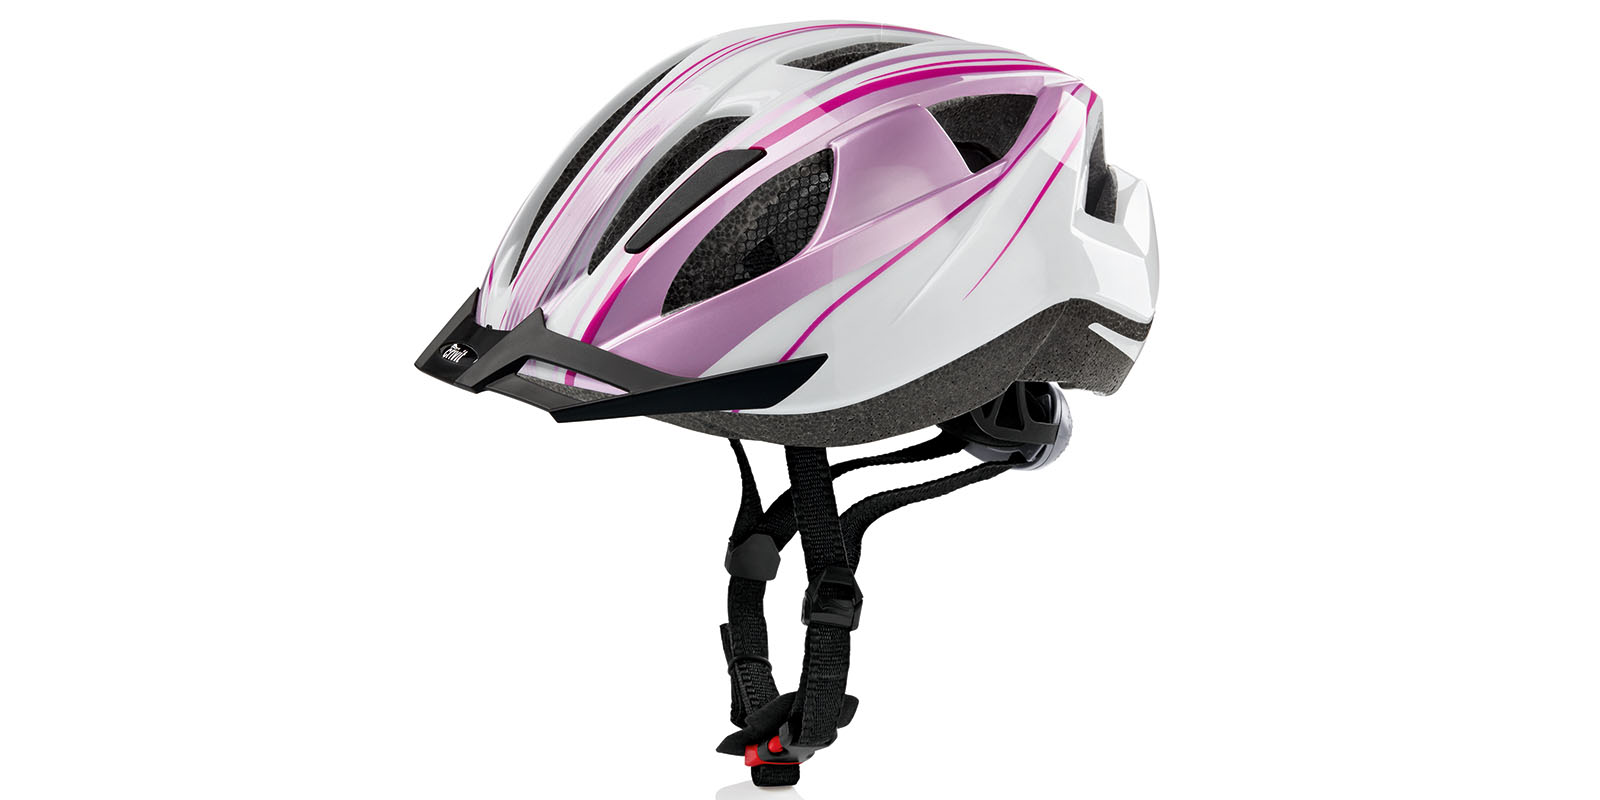 fahrradhelm mit r cklicht weiss pink s m damen crivit ebay. Black Bedroom Furniture Sets. Home Design Ideas